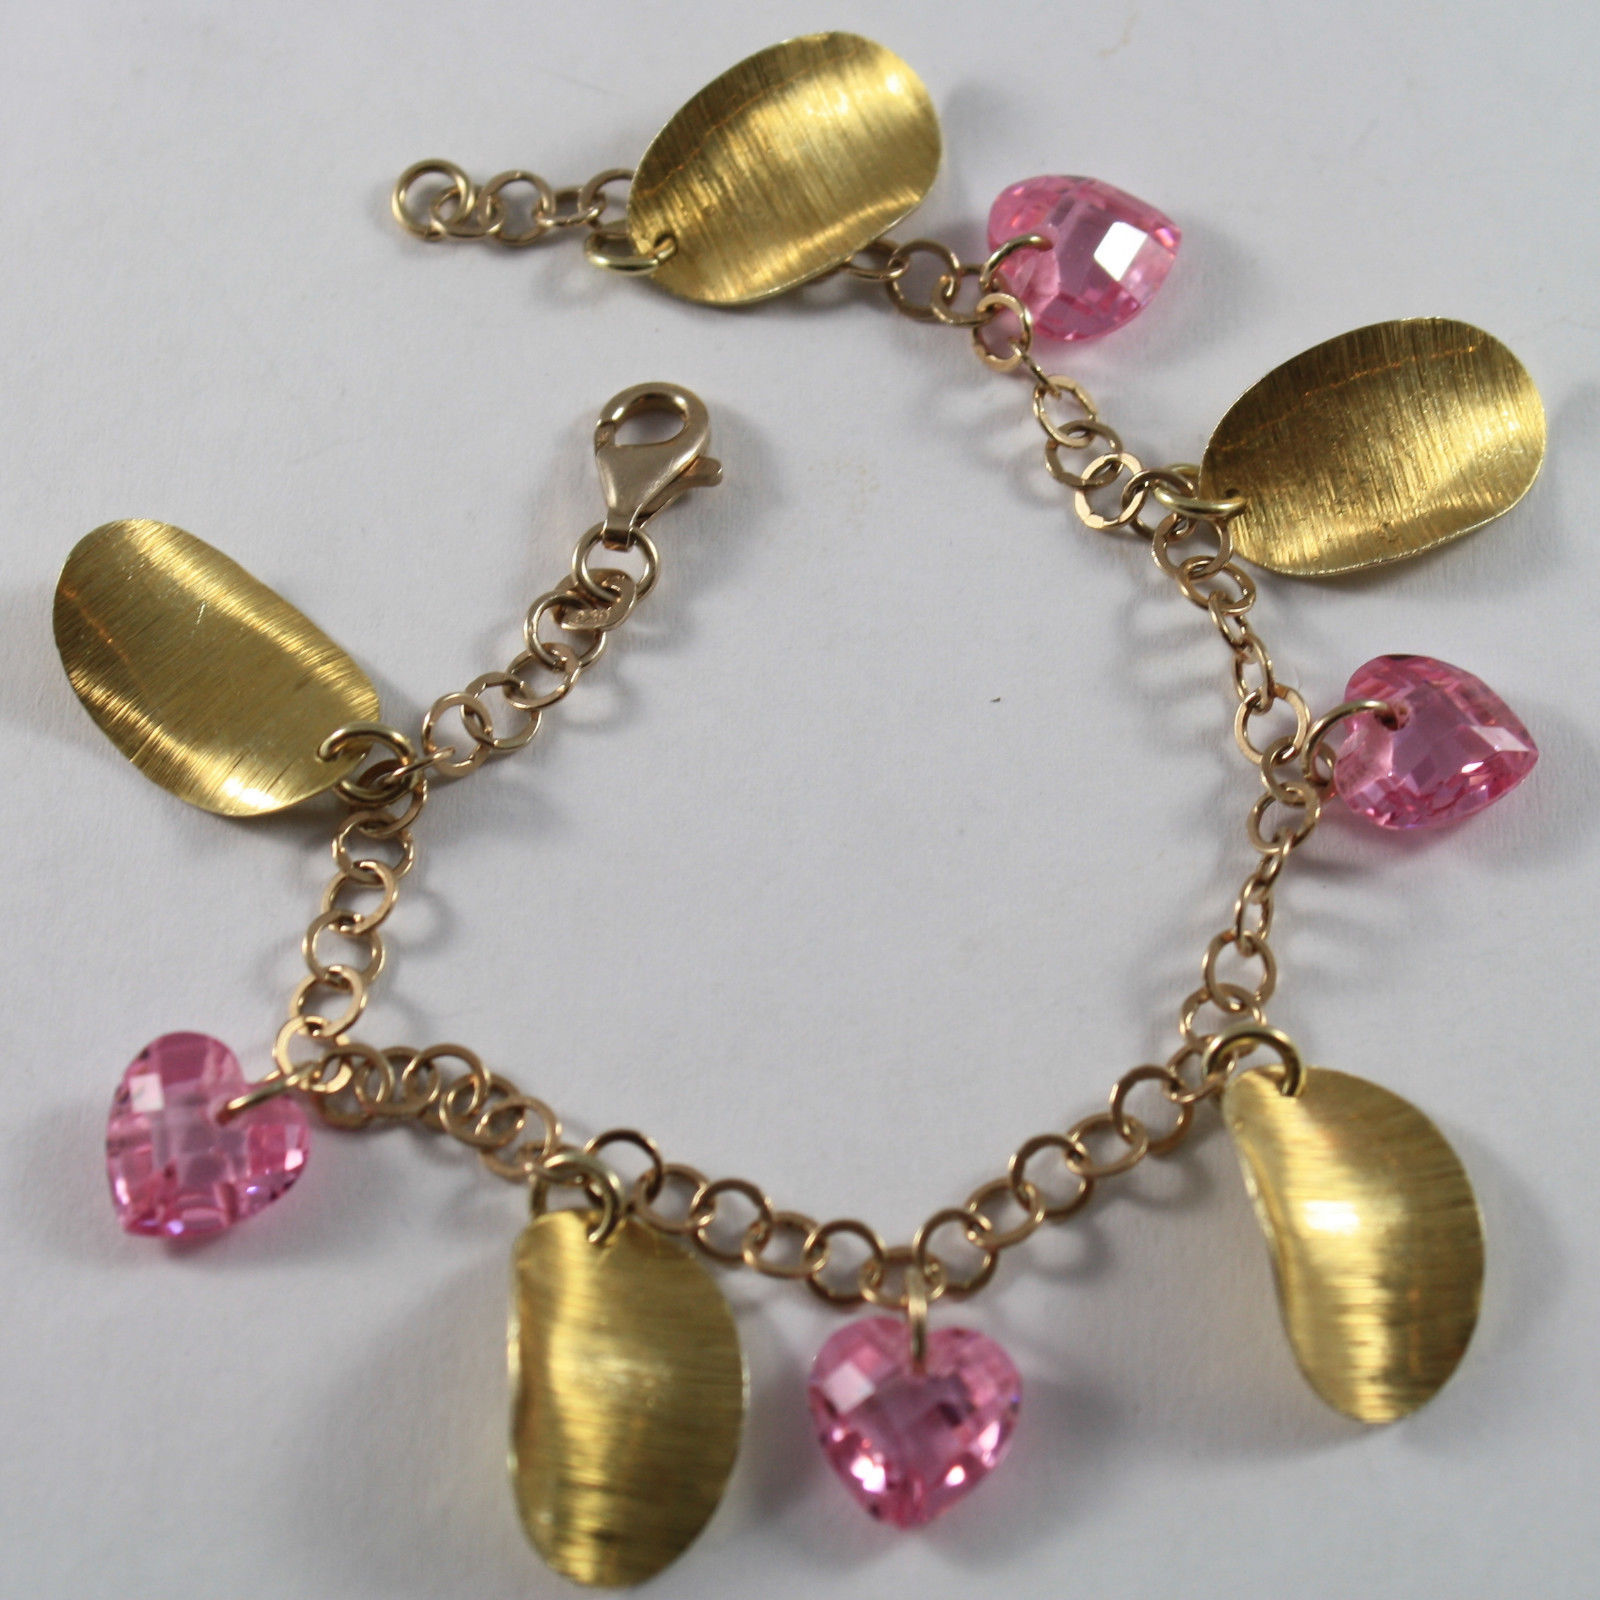 .925 RHODIUM SILVER  YELLOW GOLD PLATED BRACELET WITH CRISTAL PINK HEARTS